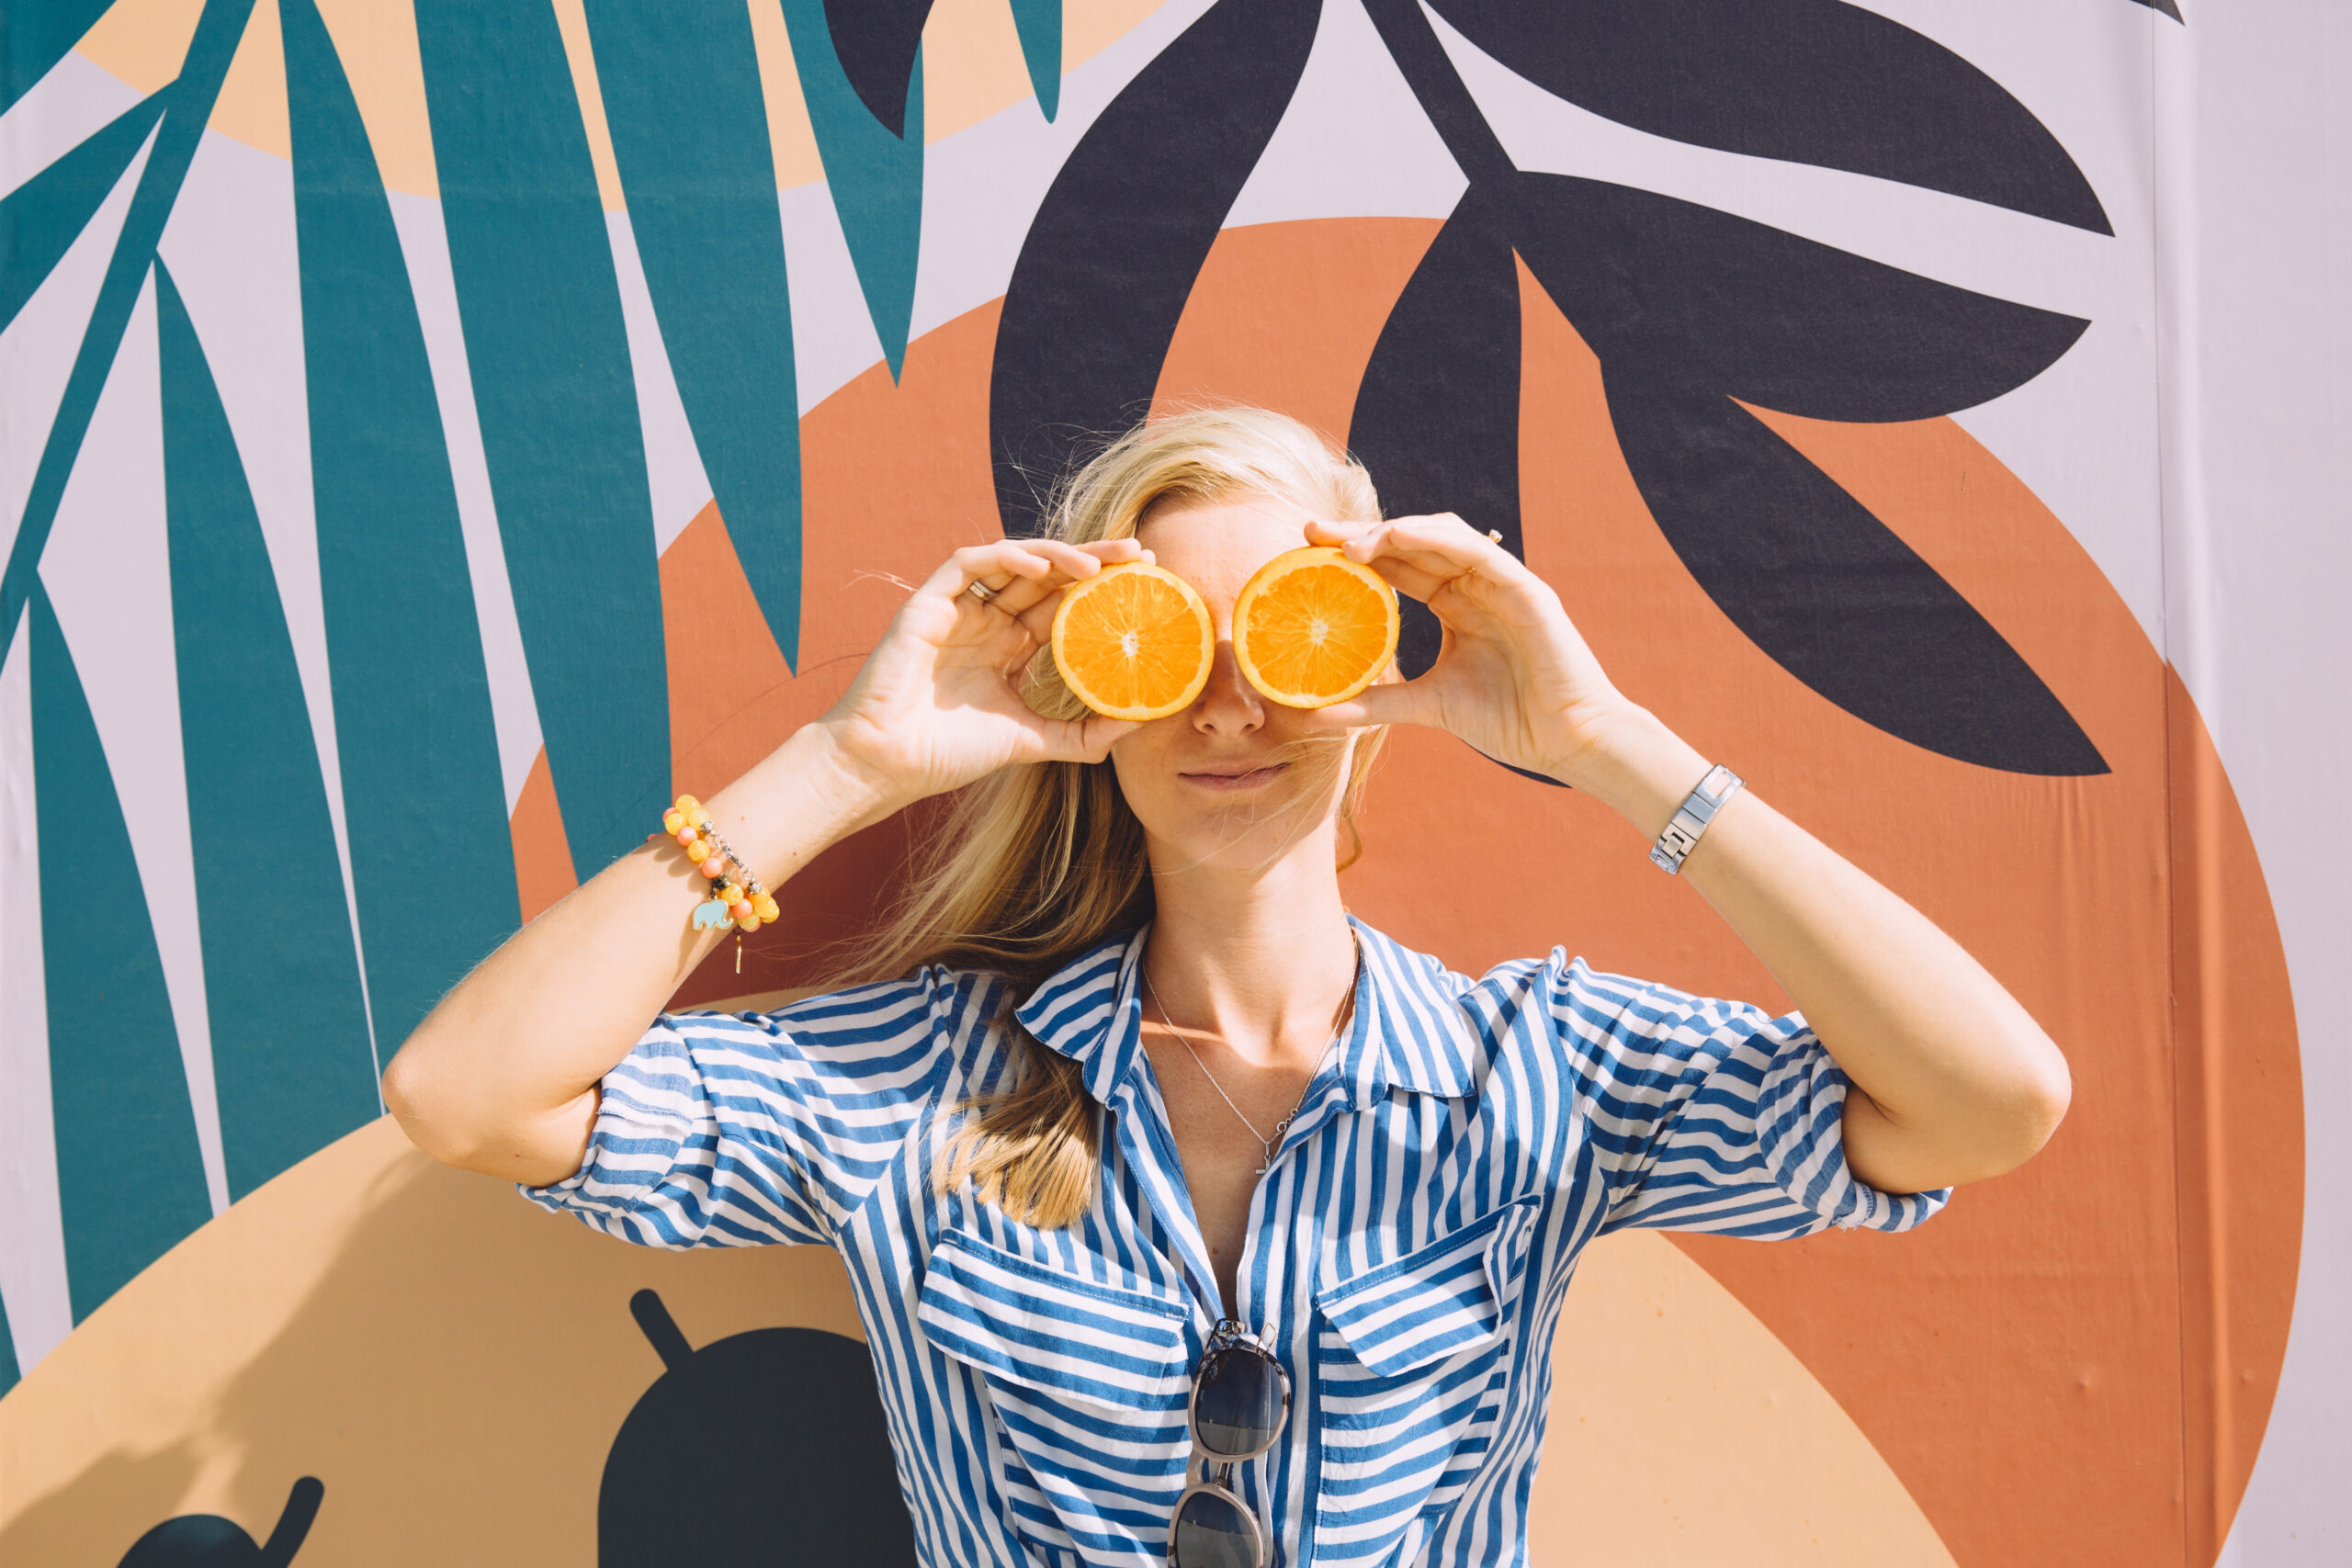 Young,Pretty,Woman,Holding,Oranges,In,Front,Of,Her,Eyes